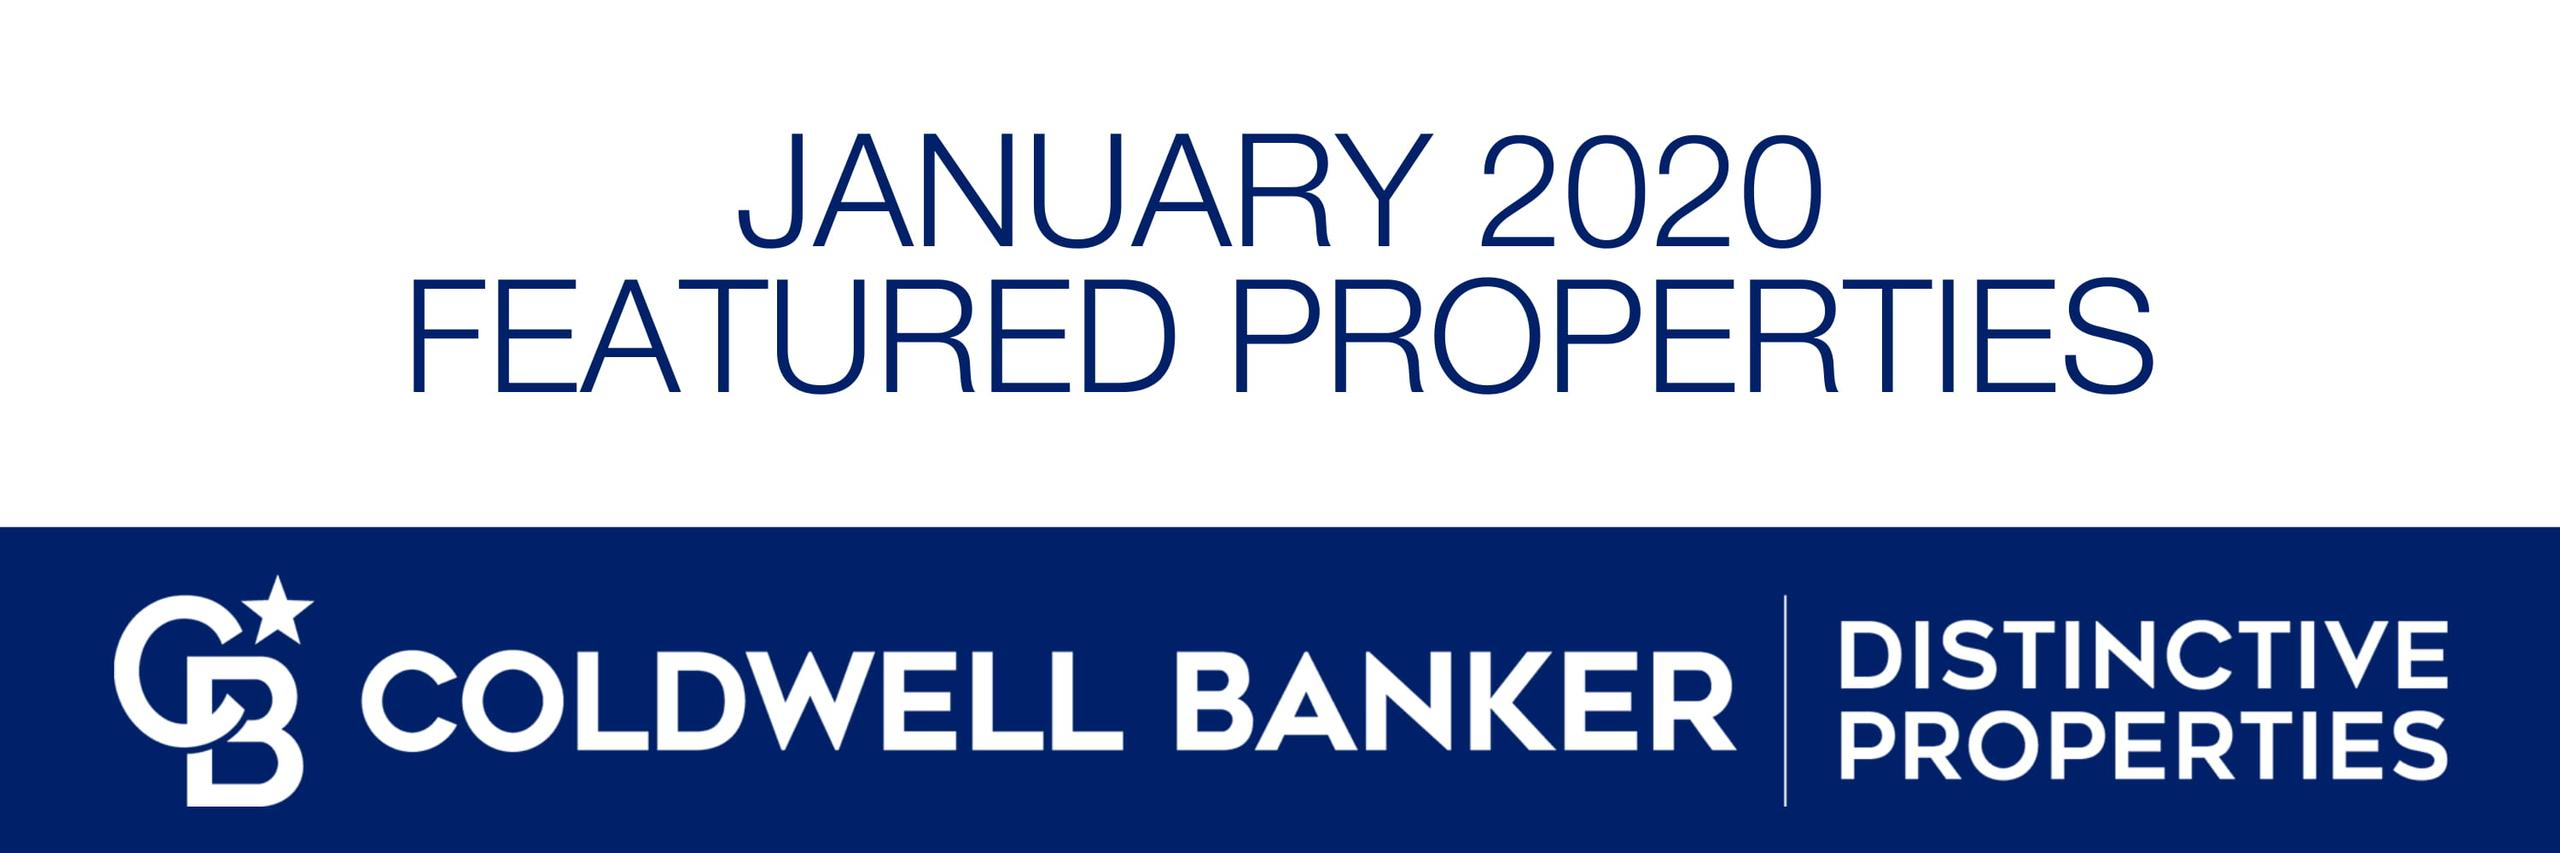 January 2020 Featured Properties